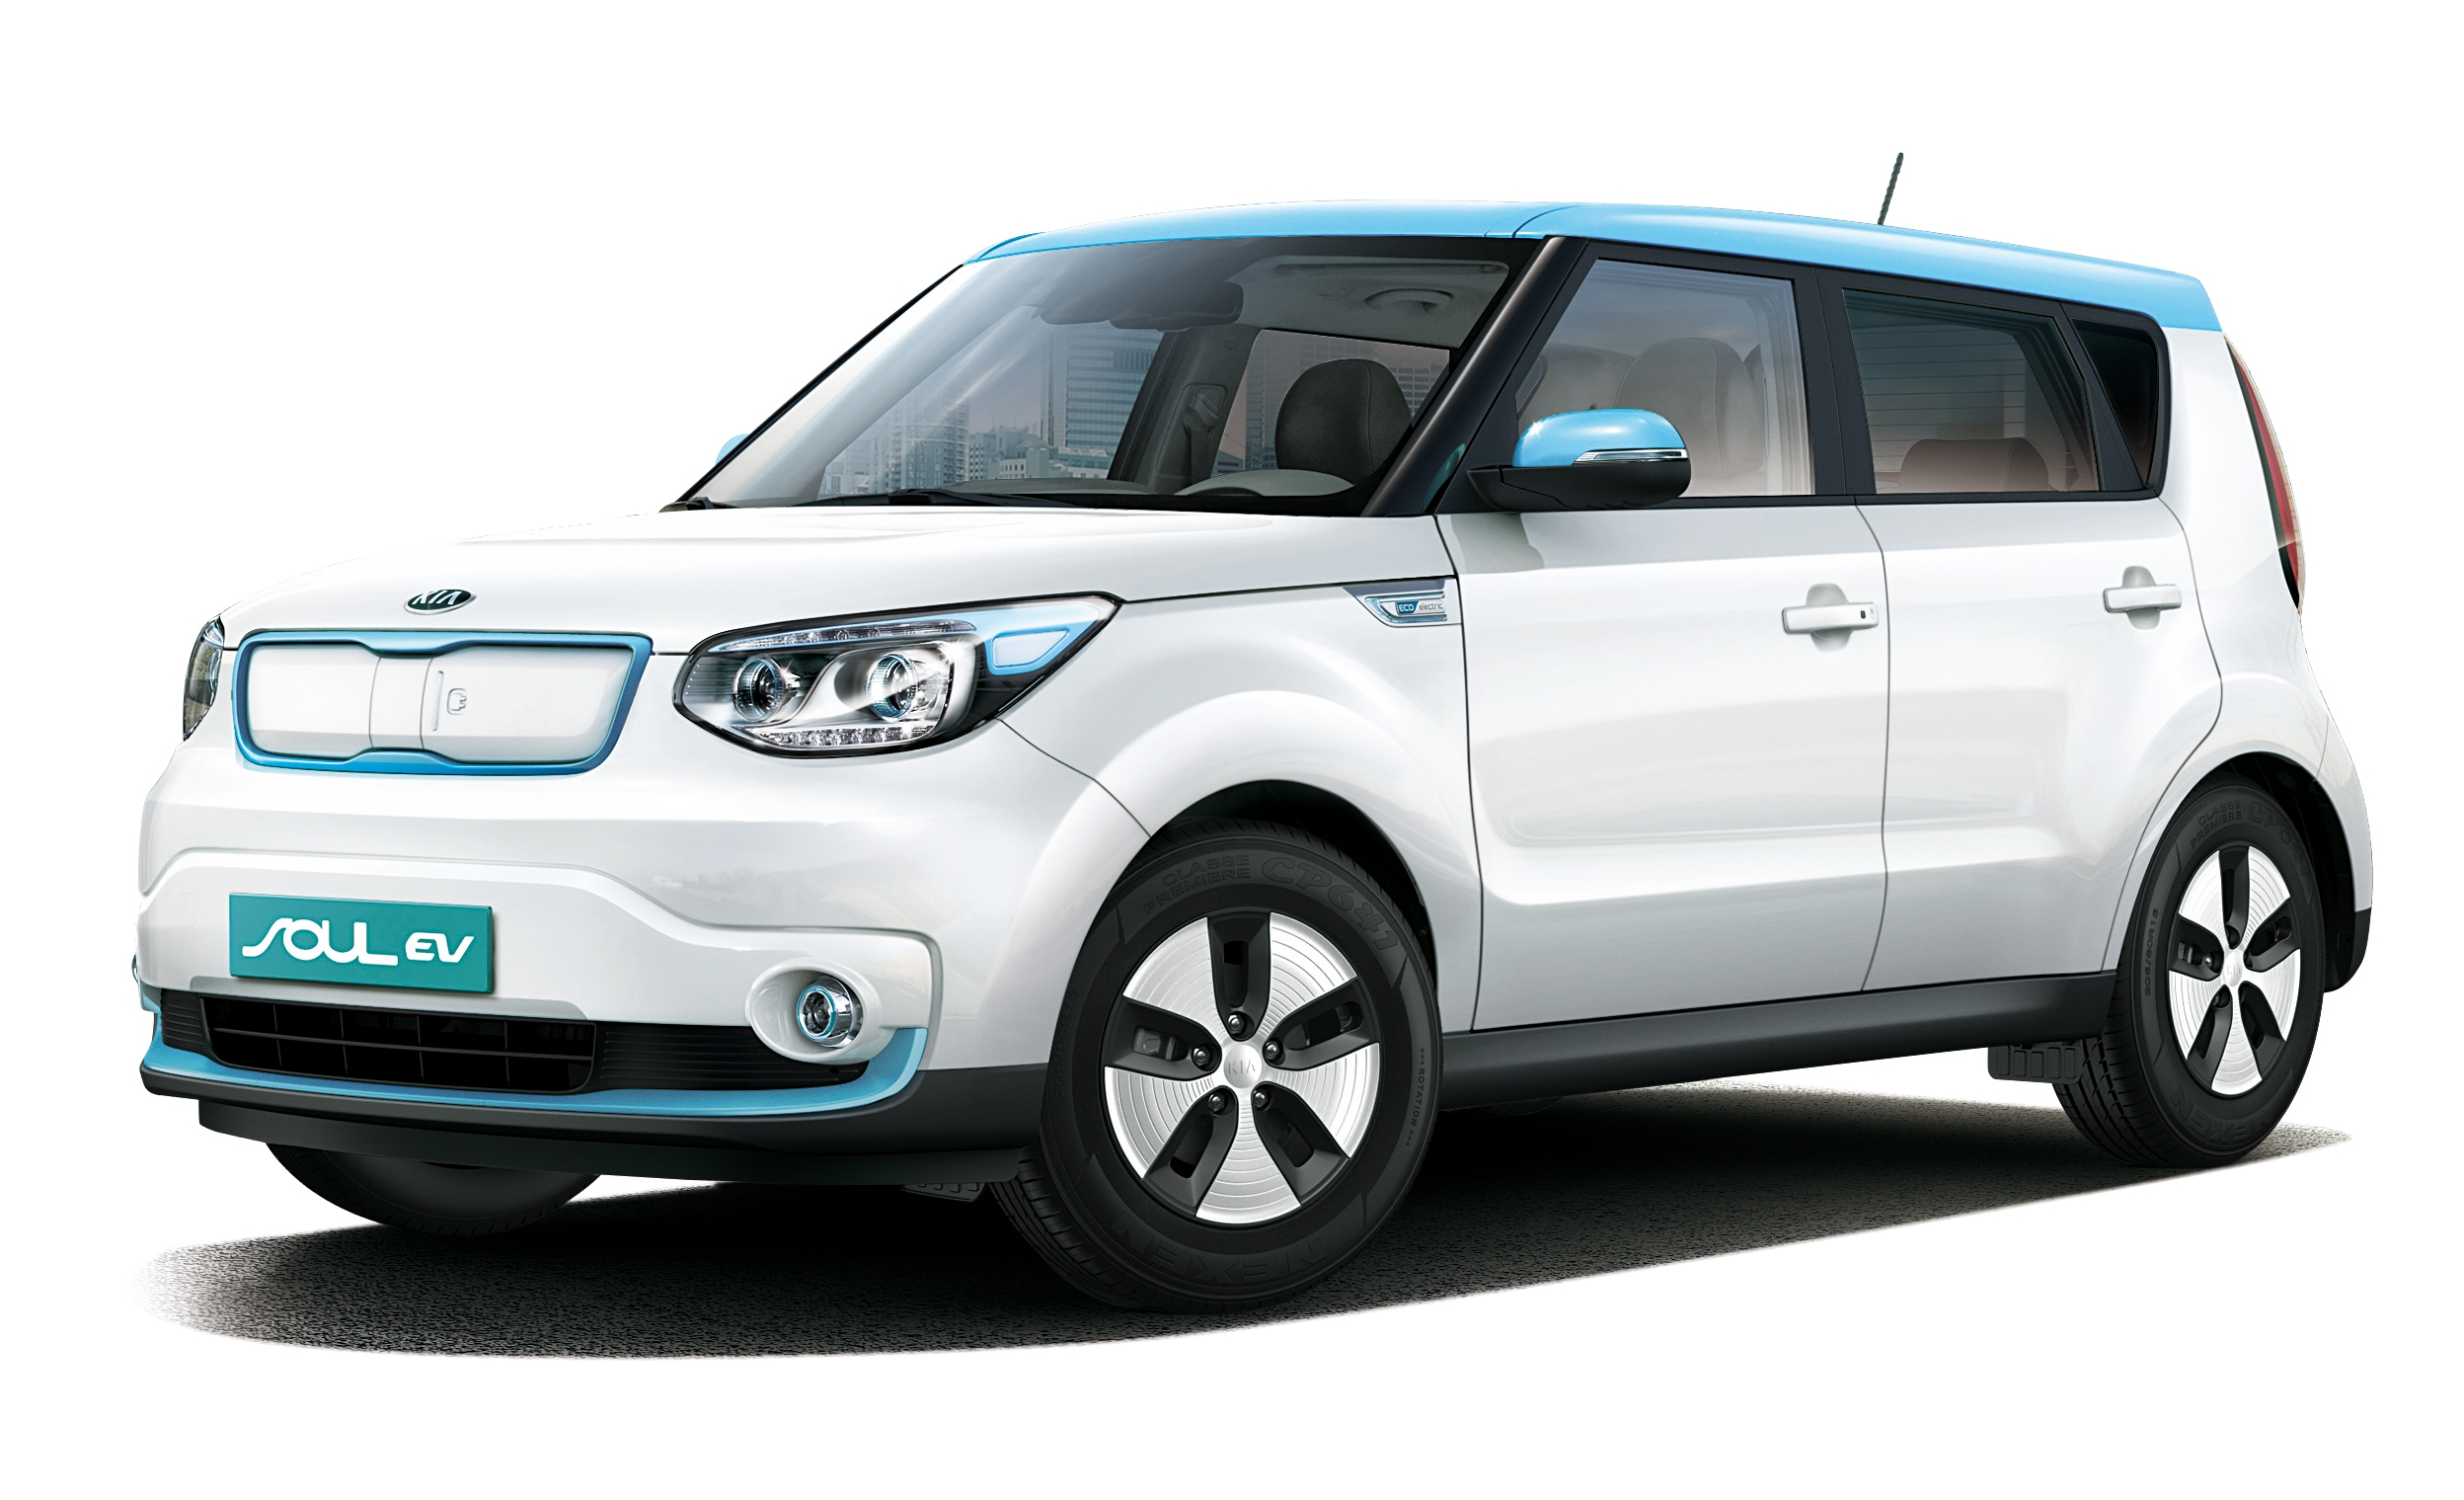 Kiau0027s Soul EV Model. Hyundai Kia Automotive Group Sold A Total Of 12,992  Electric